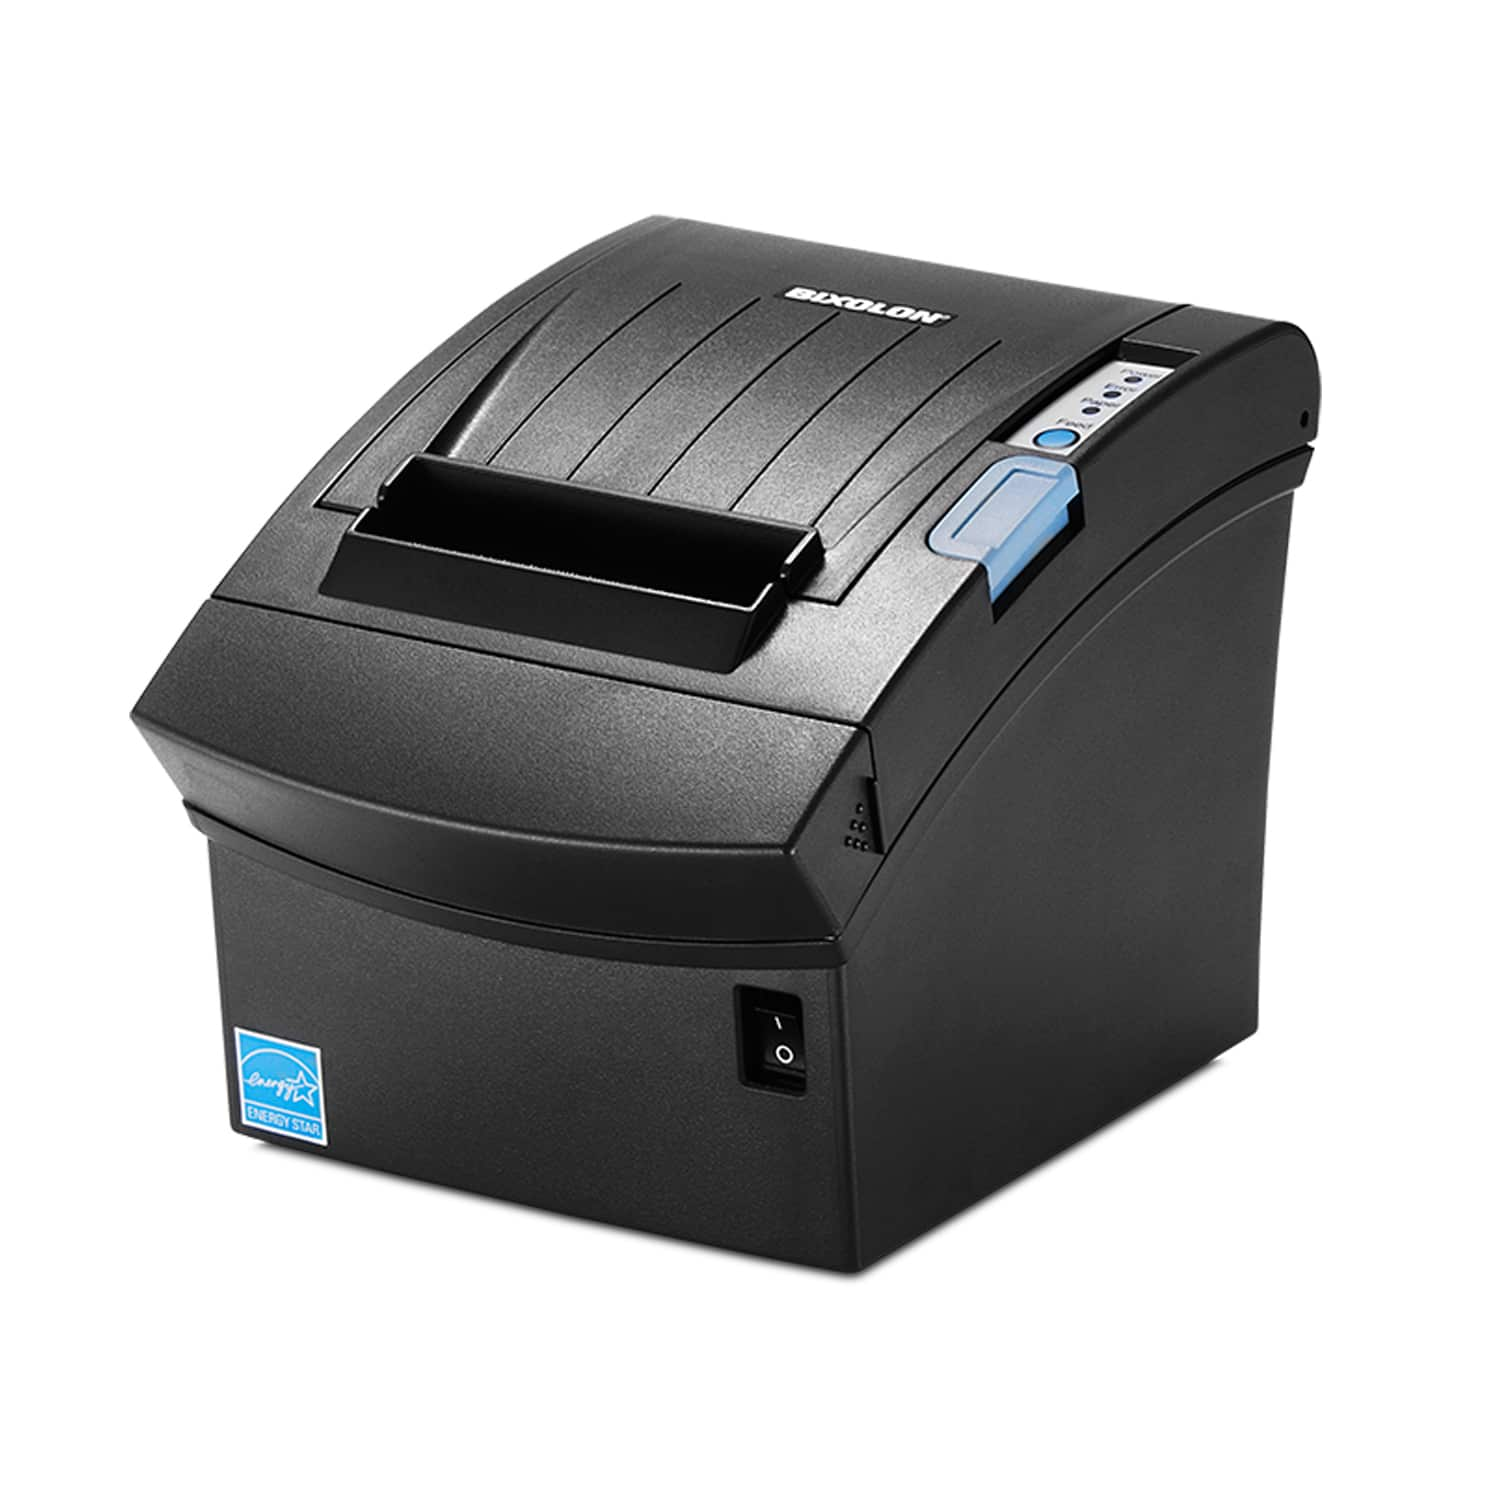 BIXOLON SAMSUNG SRP-350 PLUS DRIVER FOR WINDOWS MAC